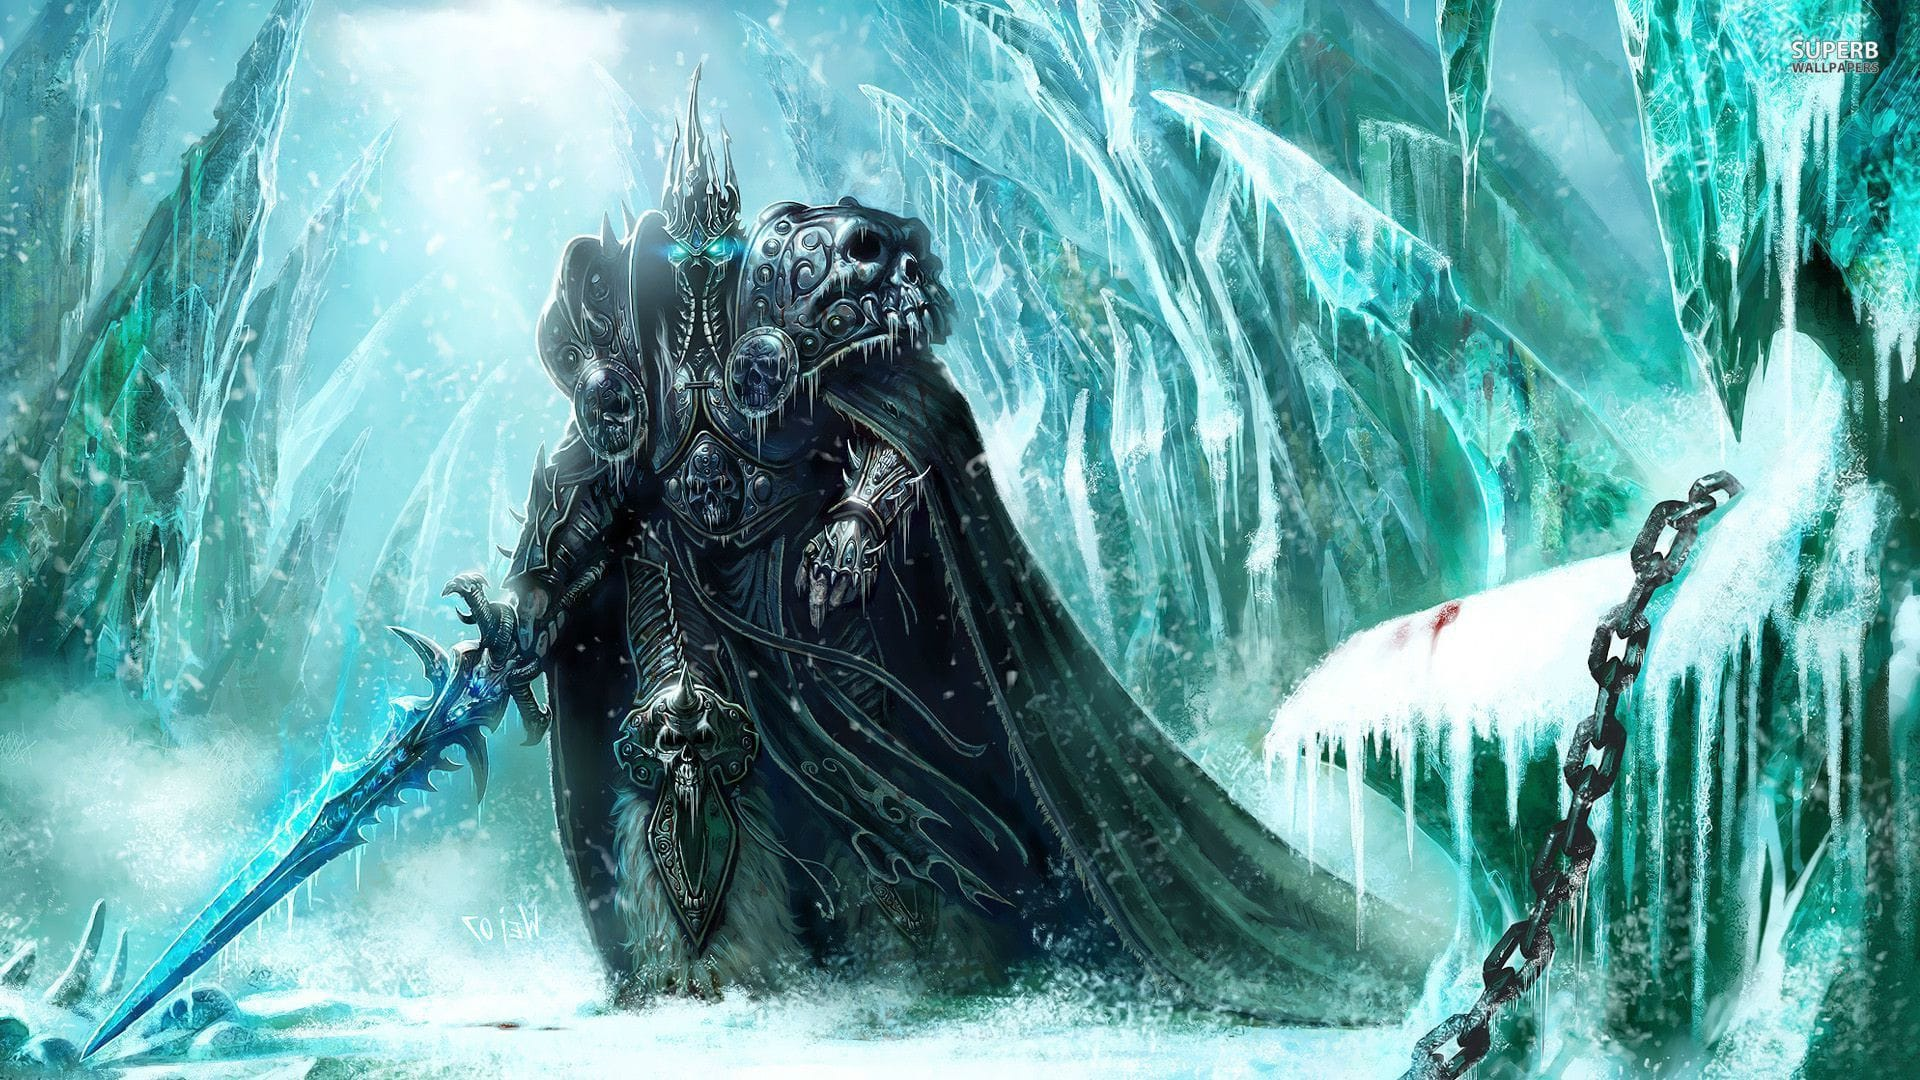 WOW: The Lich King Wallpaper